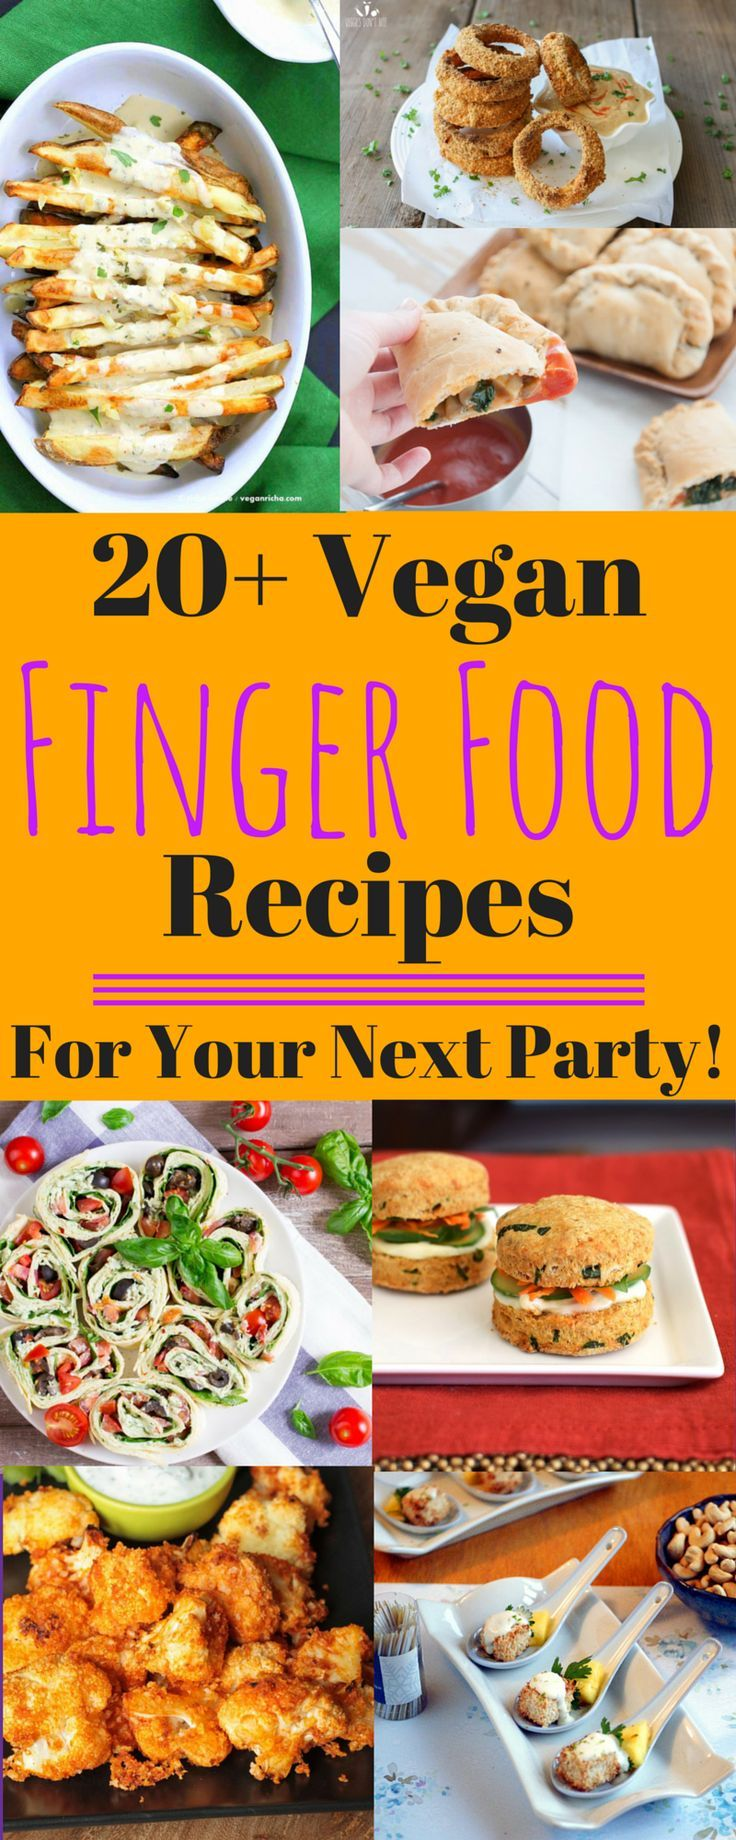 20 Better-For-You Super Bowl Recipes 20 Better-For-You Super Bowl Recipes new pics